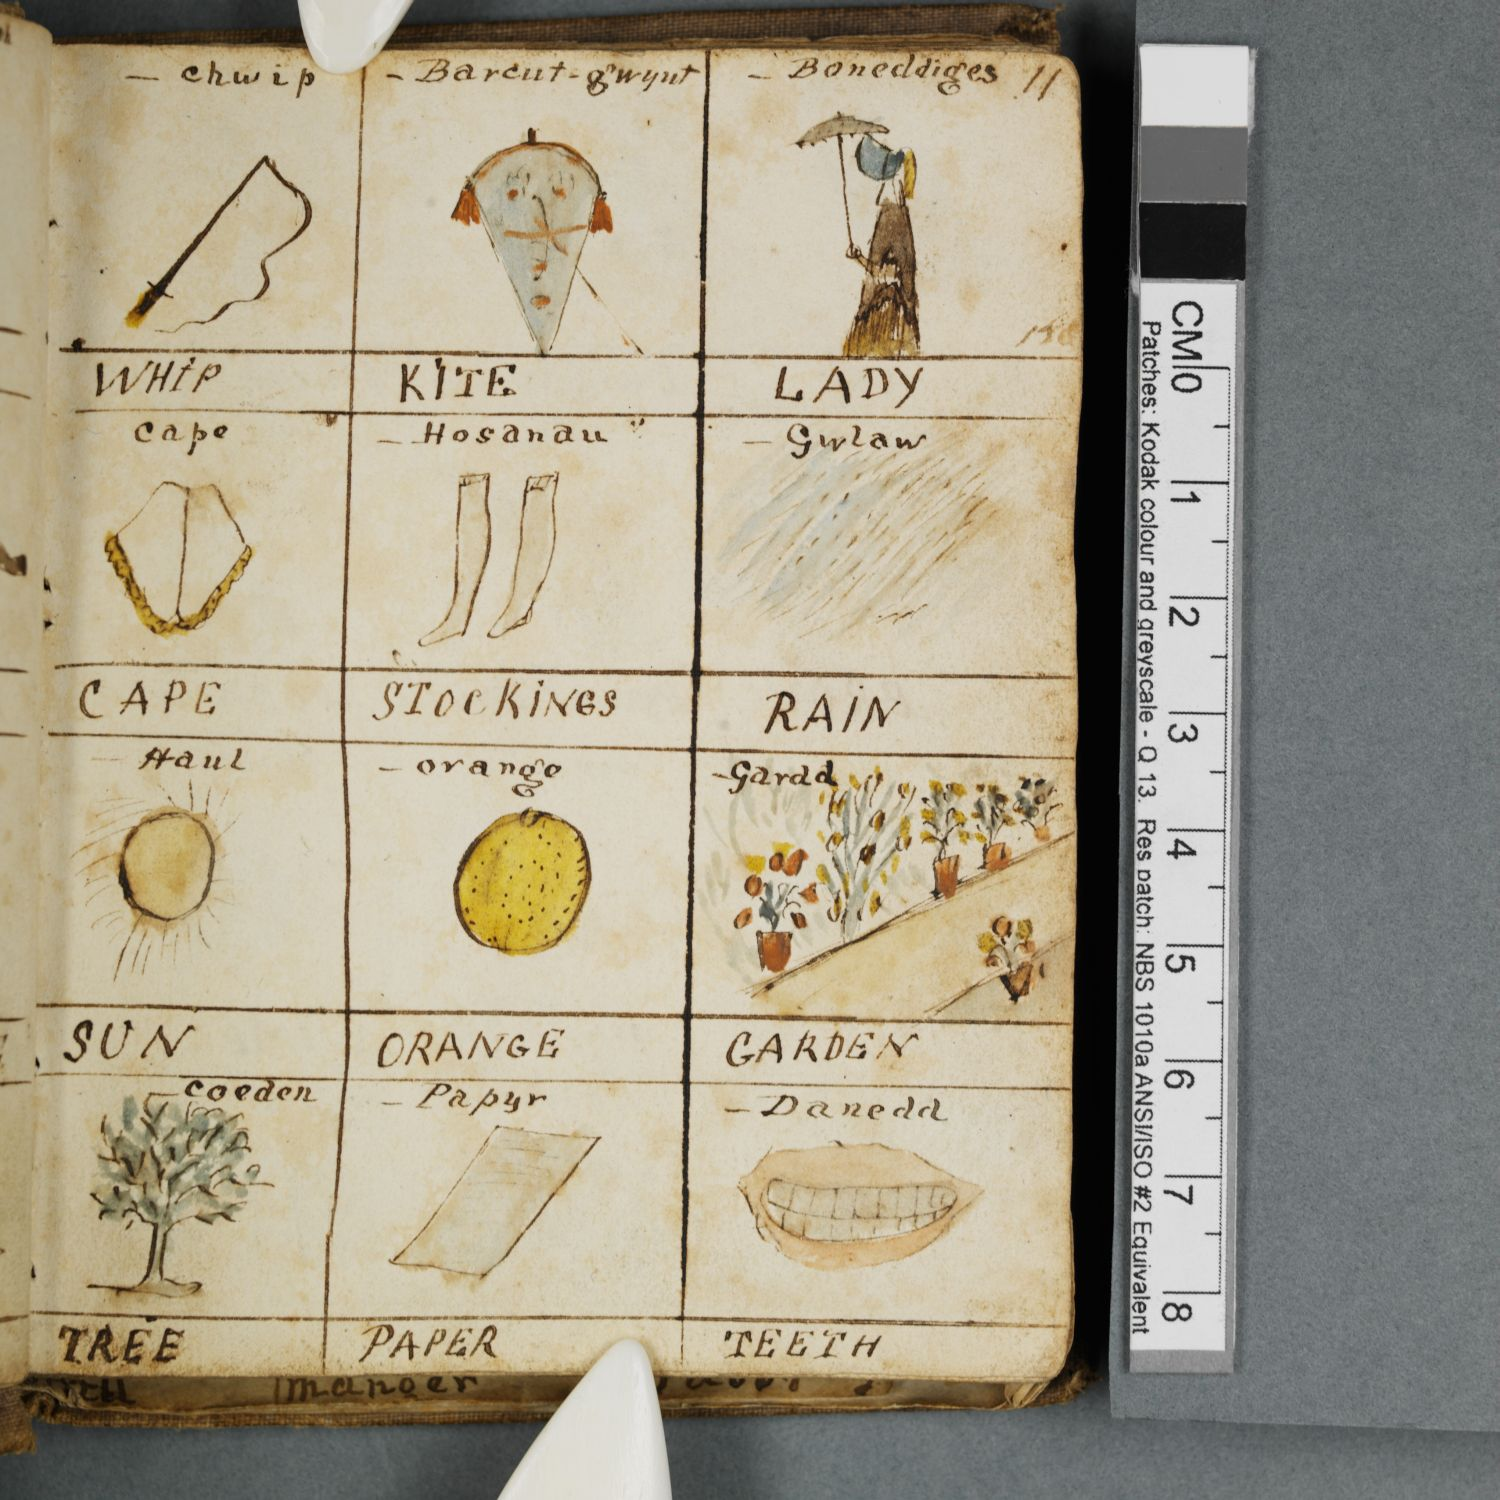 Pictorial dictionary by Eliza Pughe (c.1831-1850)